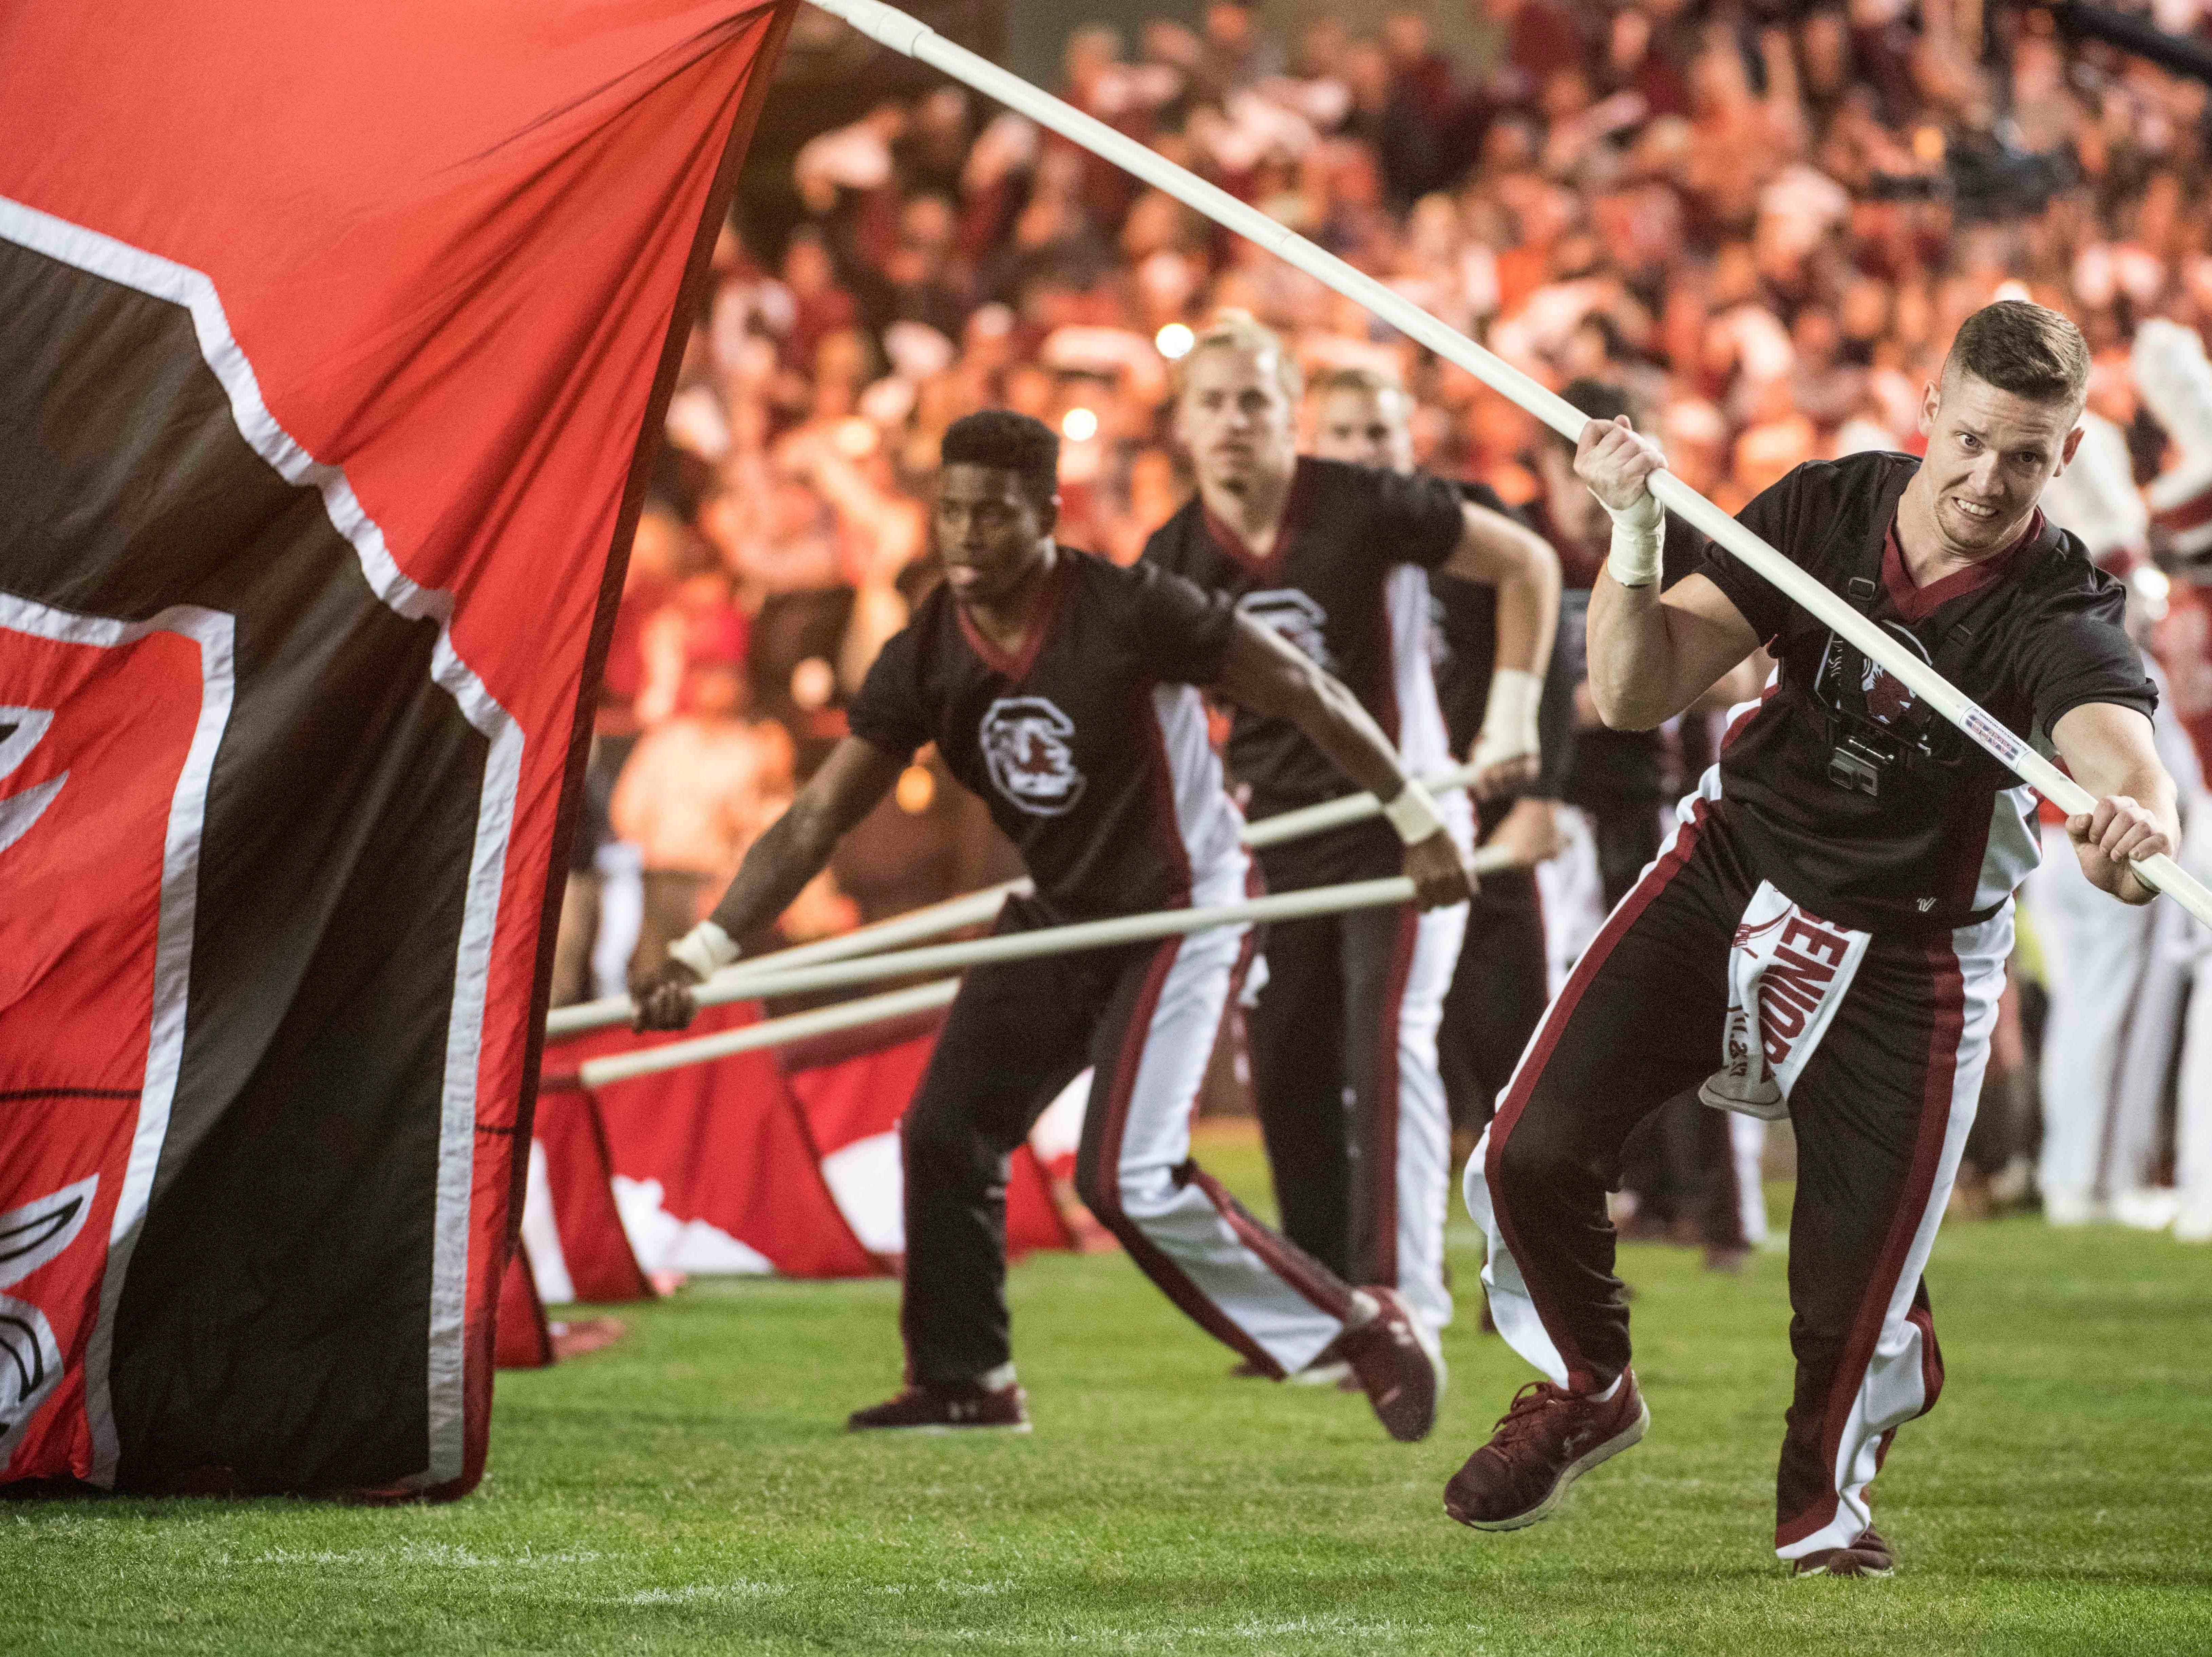 South Carolina cheerleaders lead players onto the field before an NCAA college football game against Clemson on Saturday, Nov. 25, 2017, in Columbia, S.C. Clemson defeated South Carolina 34-10. (AP Photo/Sean Rayford)